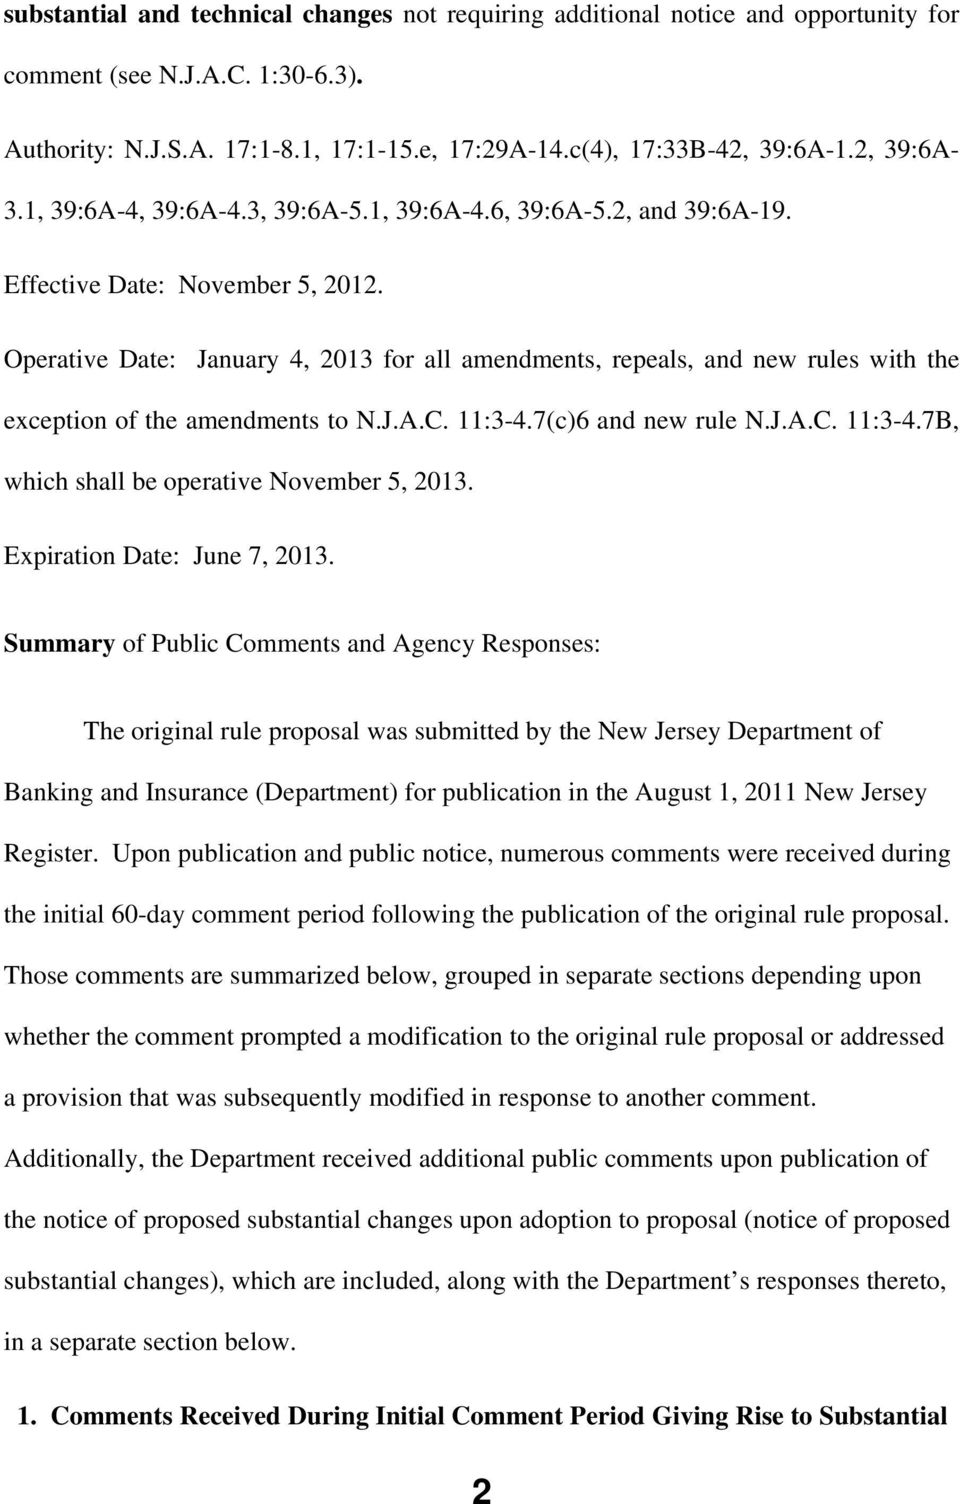 Operative Date: January 4, 2013 for all amendments, repeals, and new rules with the exception of the amendments to N.J.A.C. 11:3-4.7(c)6 and new rule N.J.A.C. 11:3-4.7B, which shall be operative November 5, 2013.